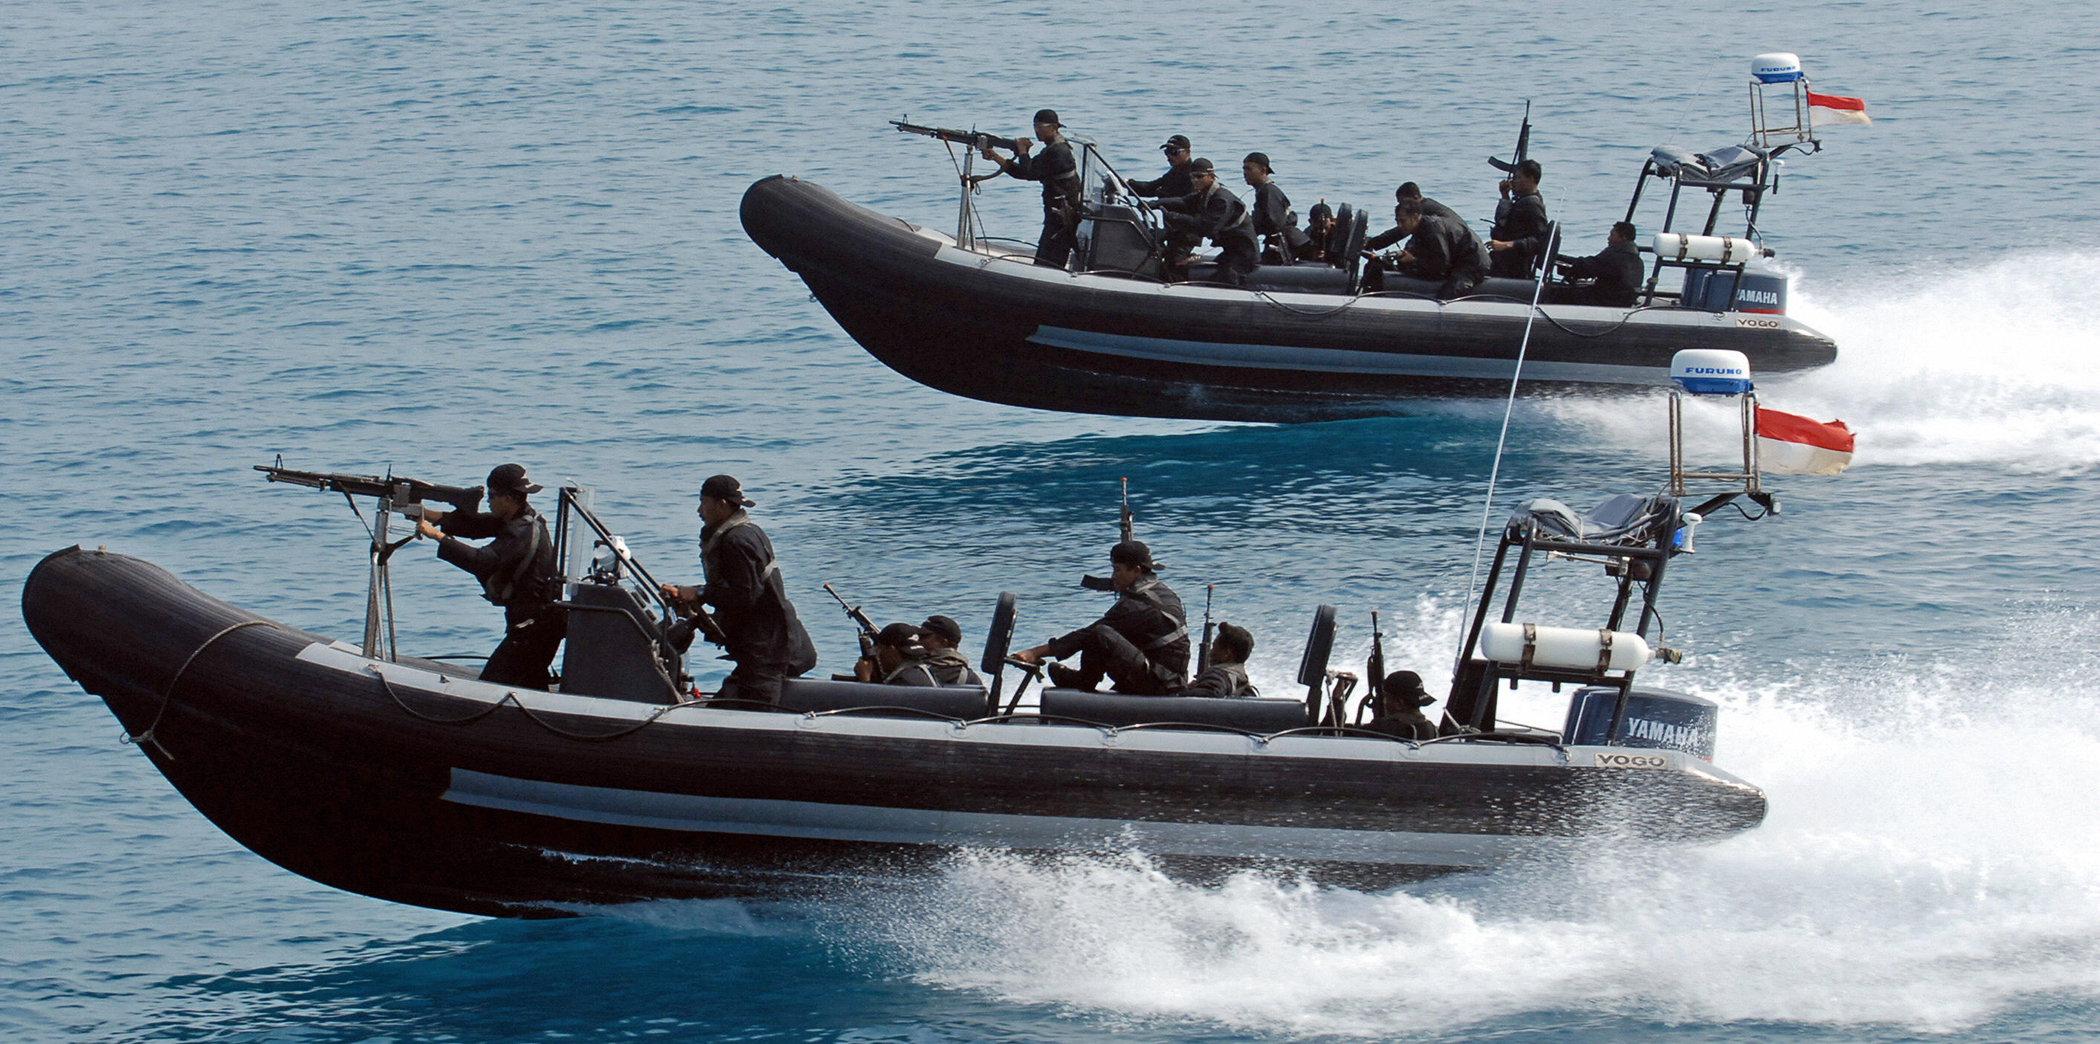 Indonesia and Malaysia join efforts against piracy